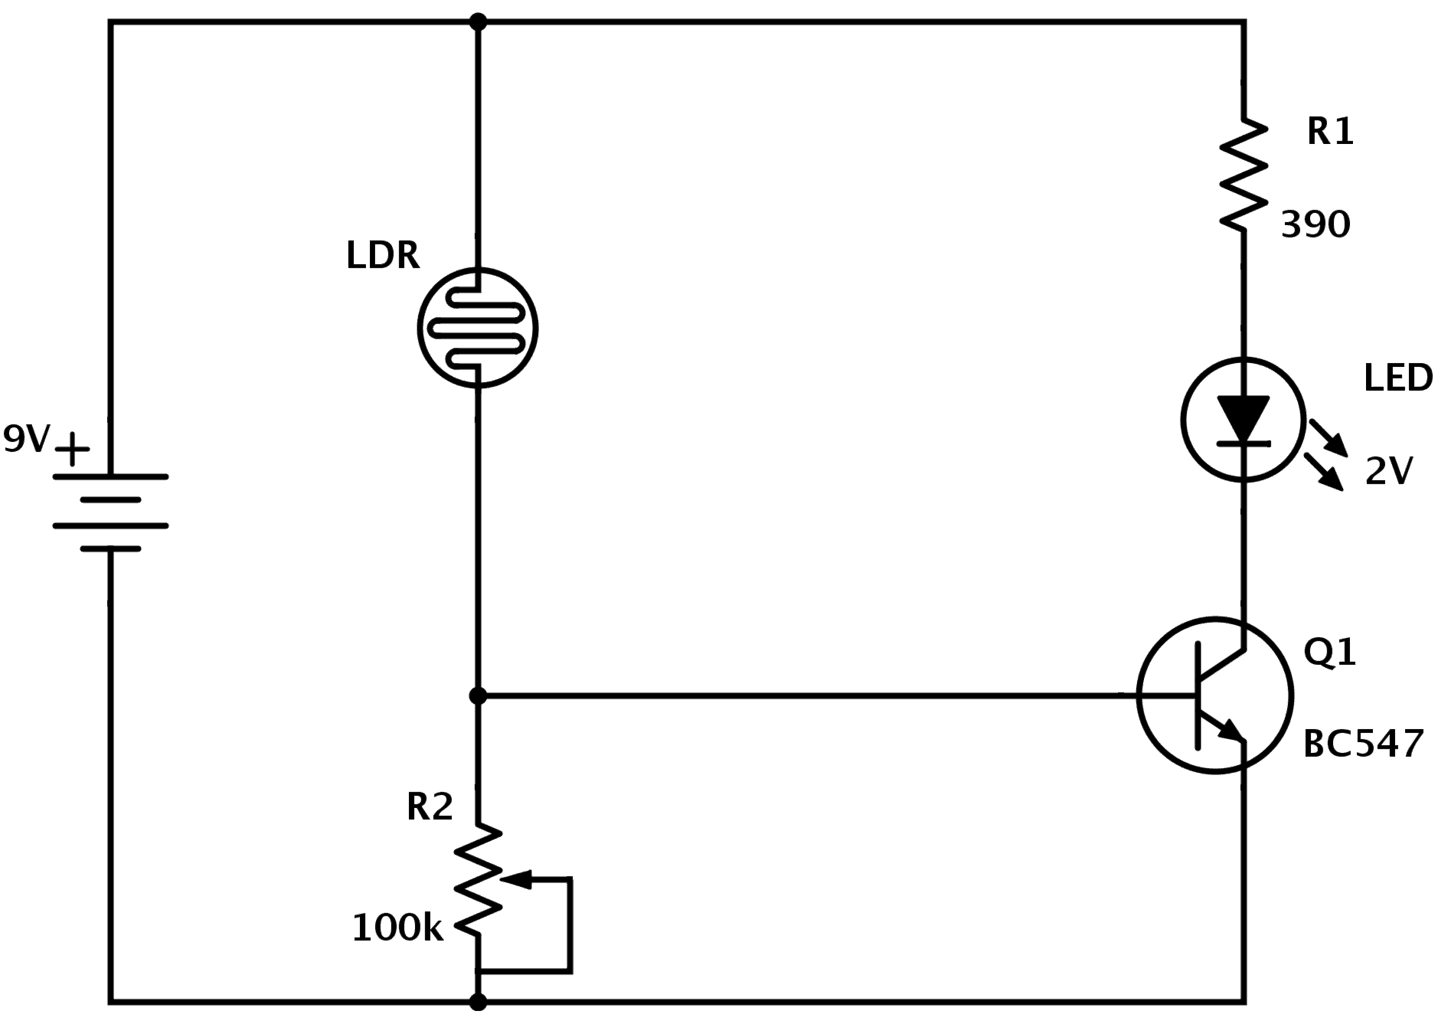 LDR circuit improved circuit diagram how to read and understand any schematic electronic circuit diagrams at gsmportal.co